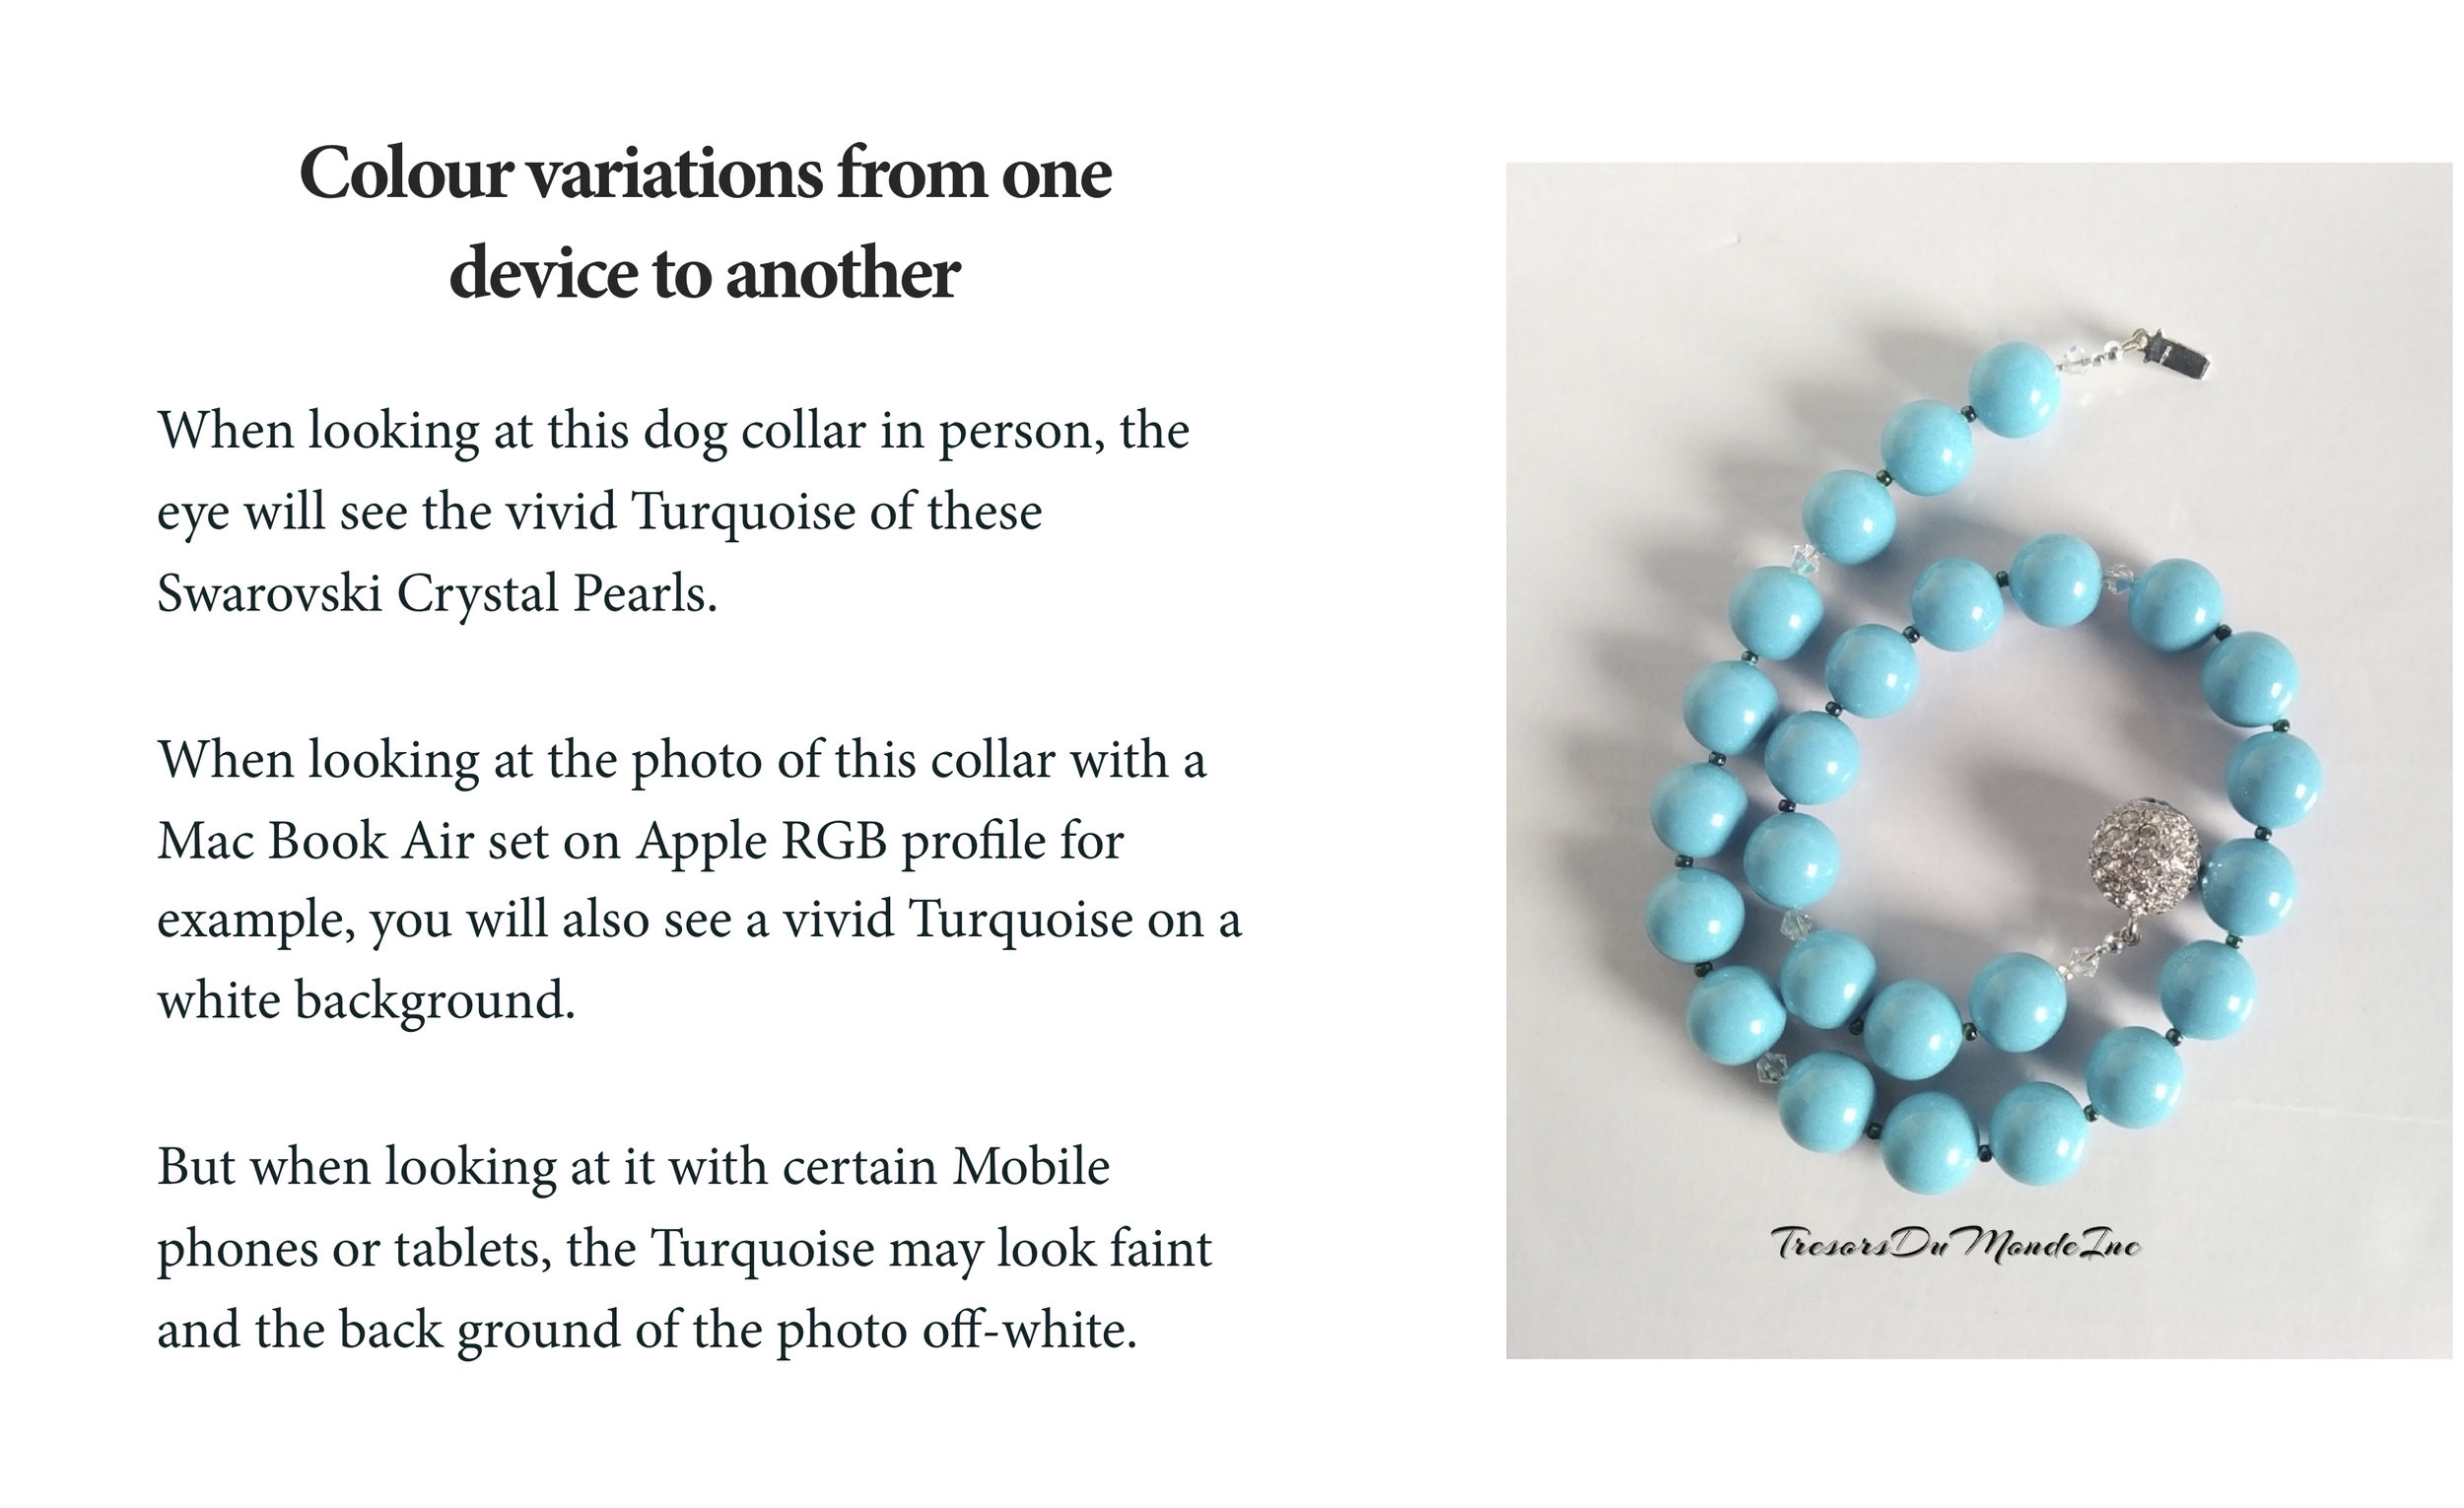 P.S.: Turquoise is the name of the colour given to these Crystal Pearls by Swarovski